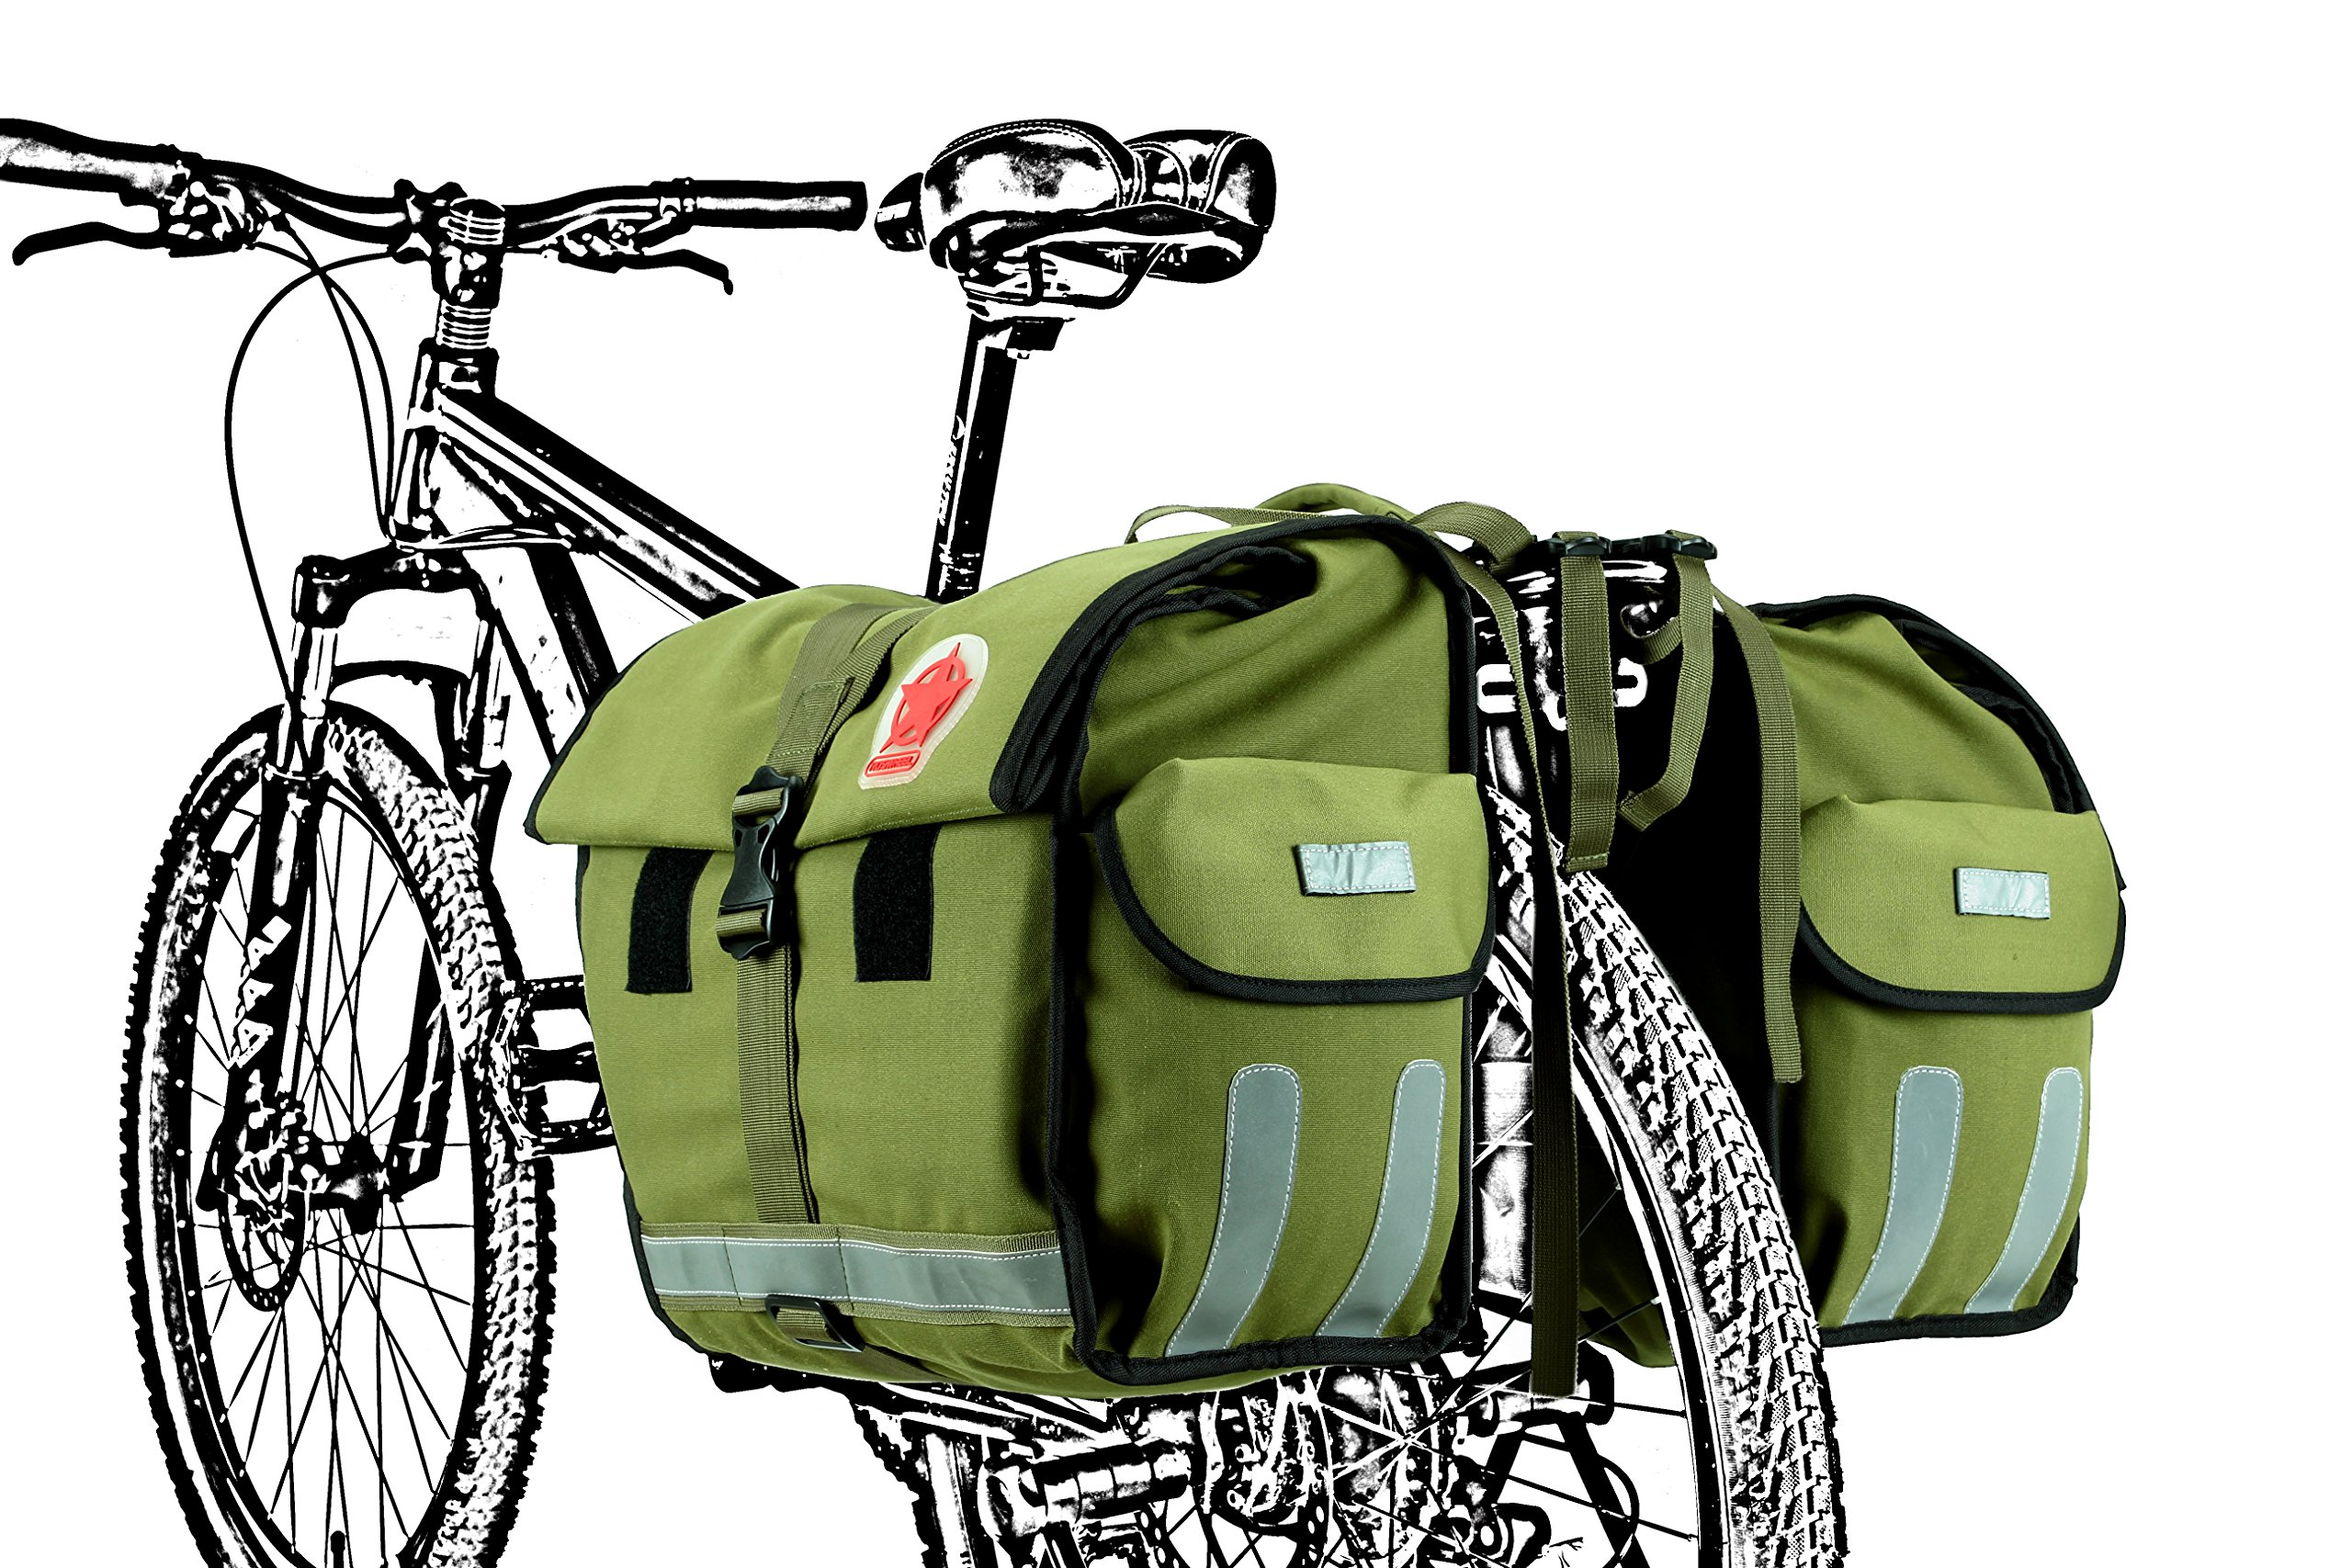 Roswheel 14686 Expedition Series Bike Rear Rack Bag Bicycle Double Panniers Cargo Trunk Bag by Roswheel (Image #6)